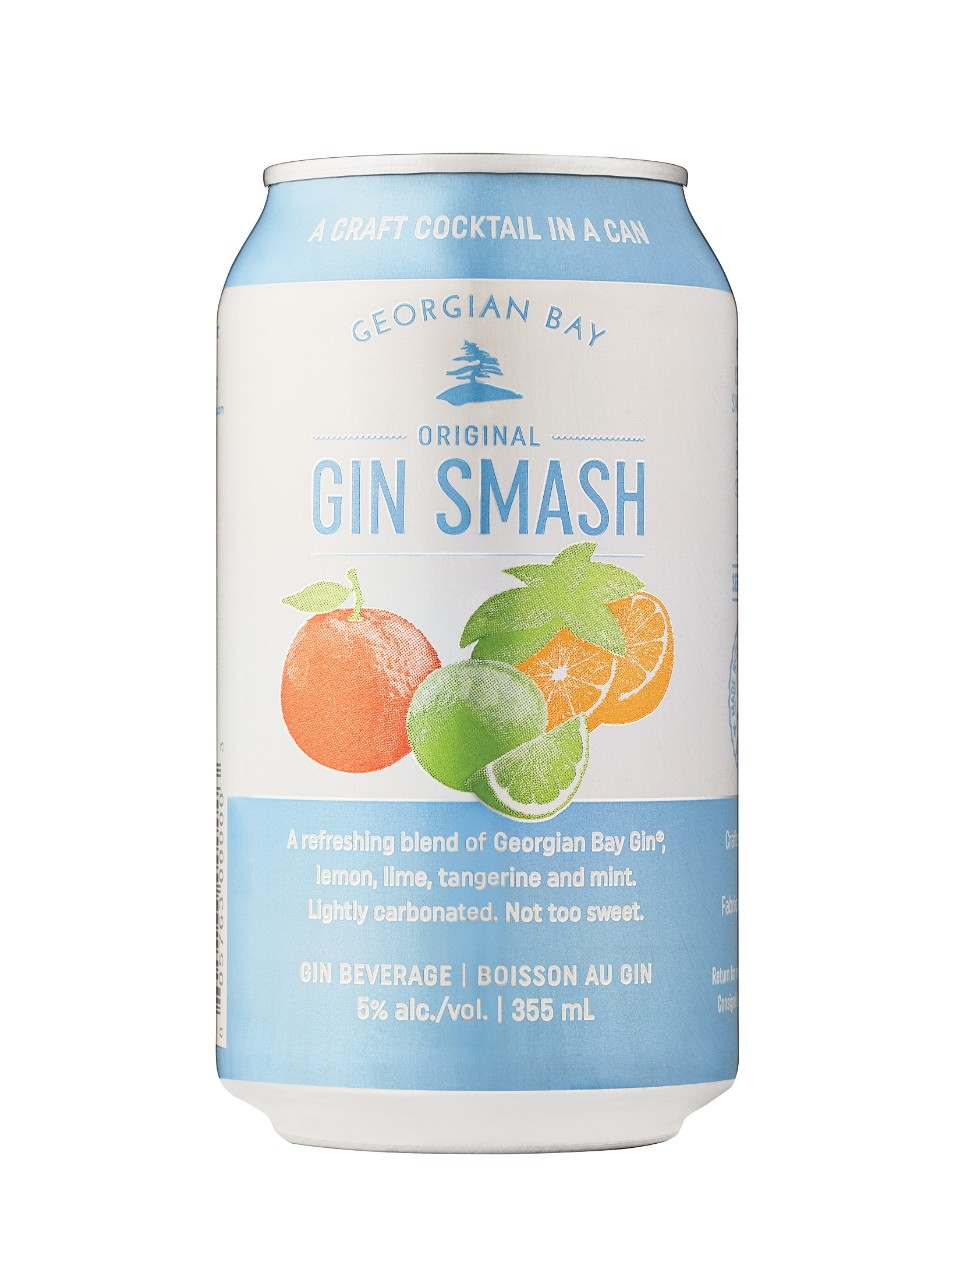 Georgian Bay Gin Smash from LCBO